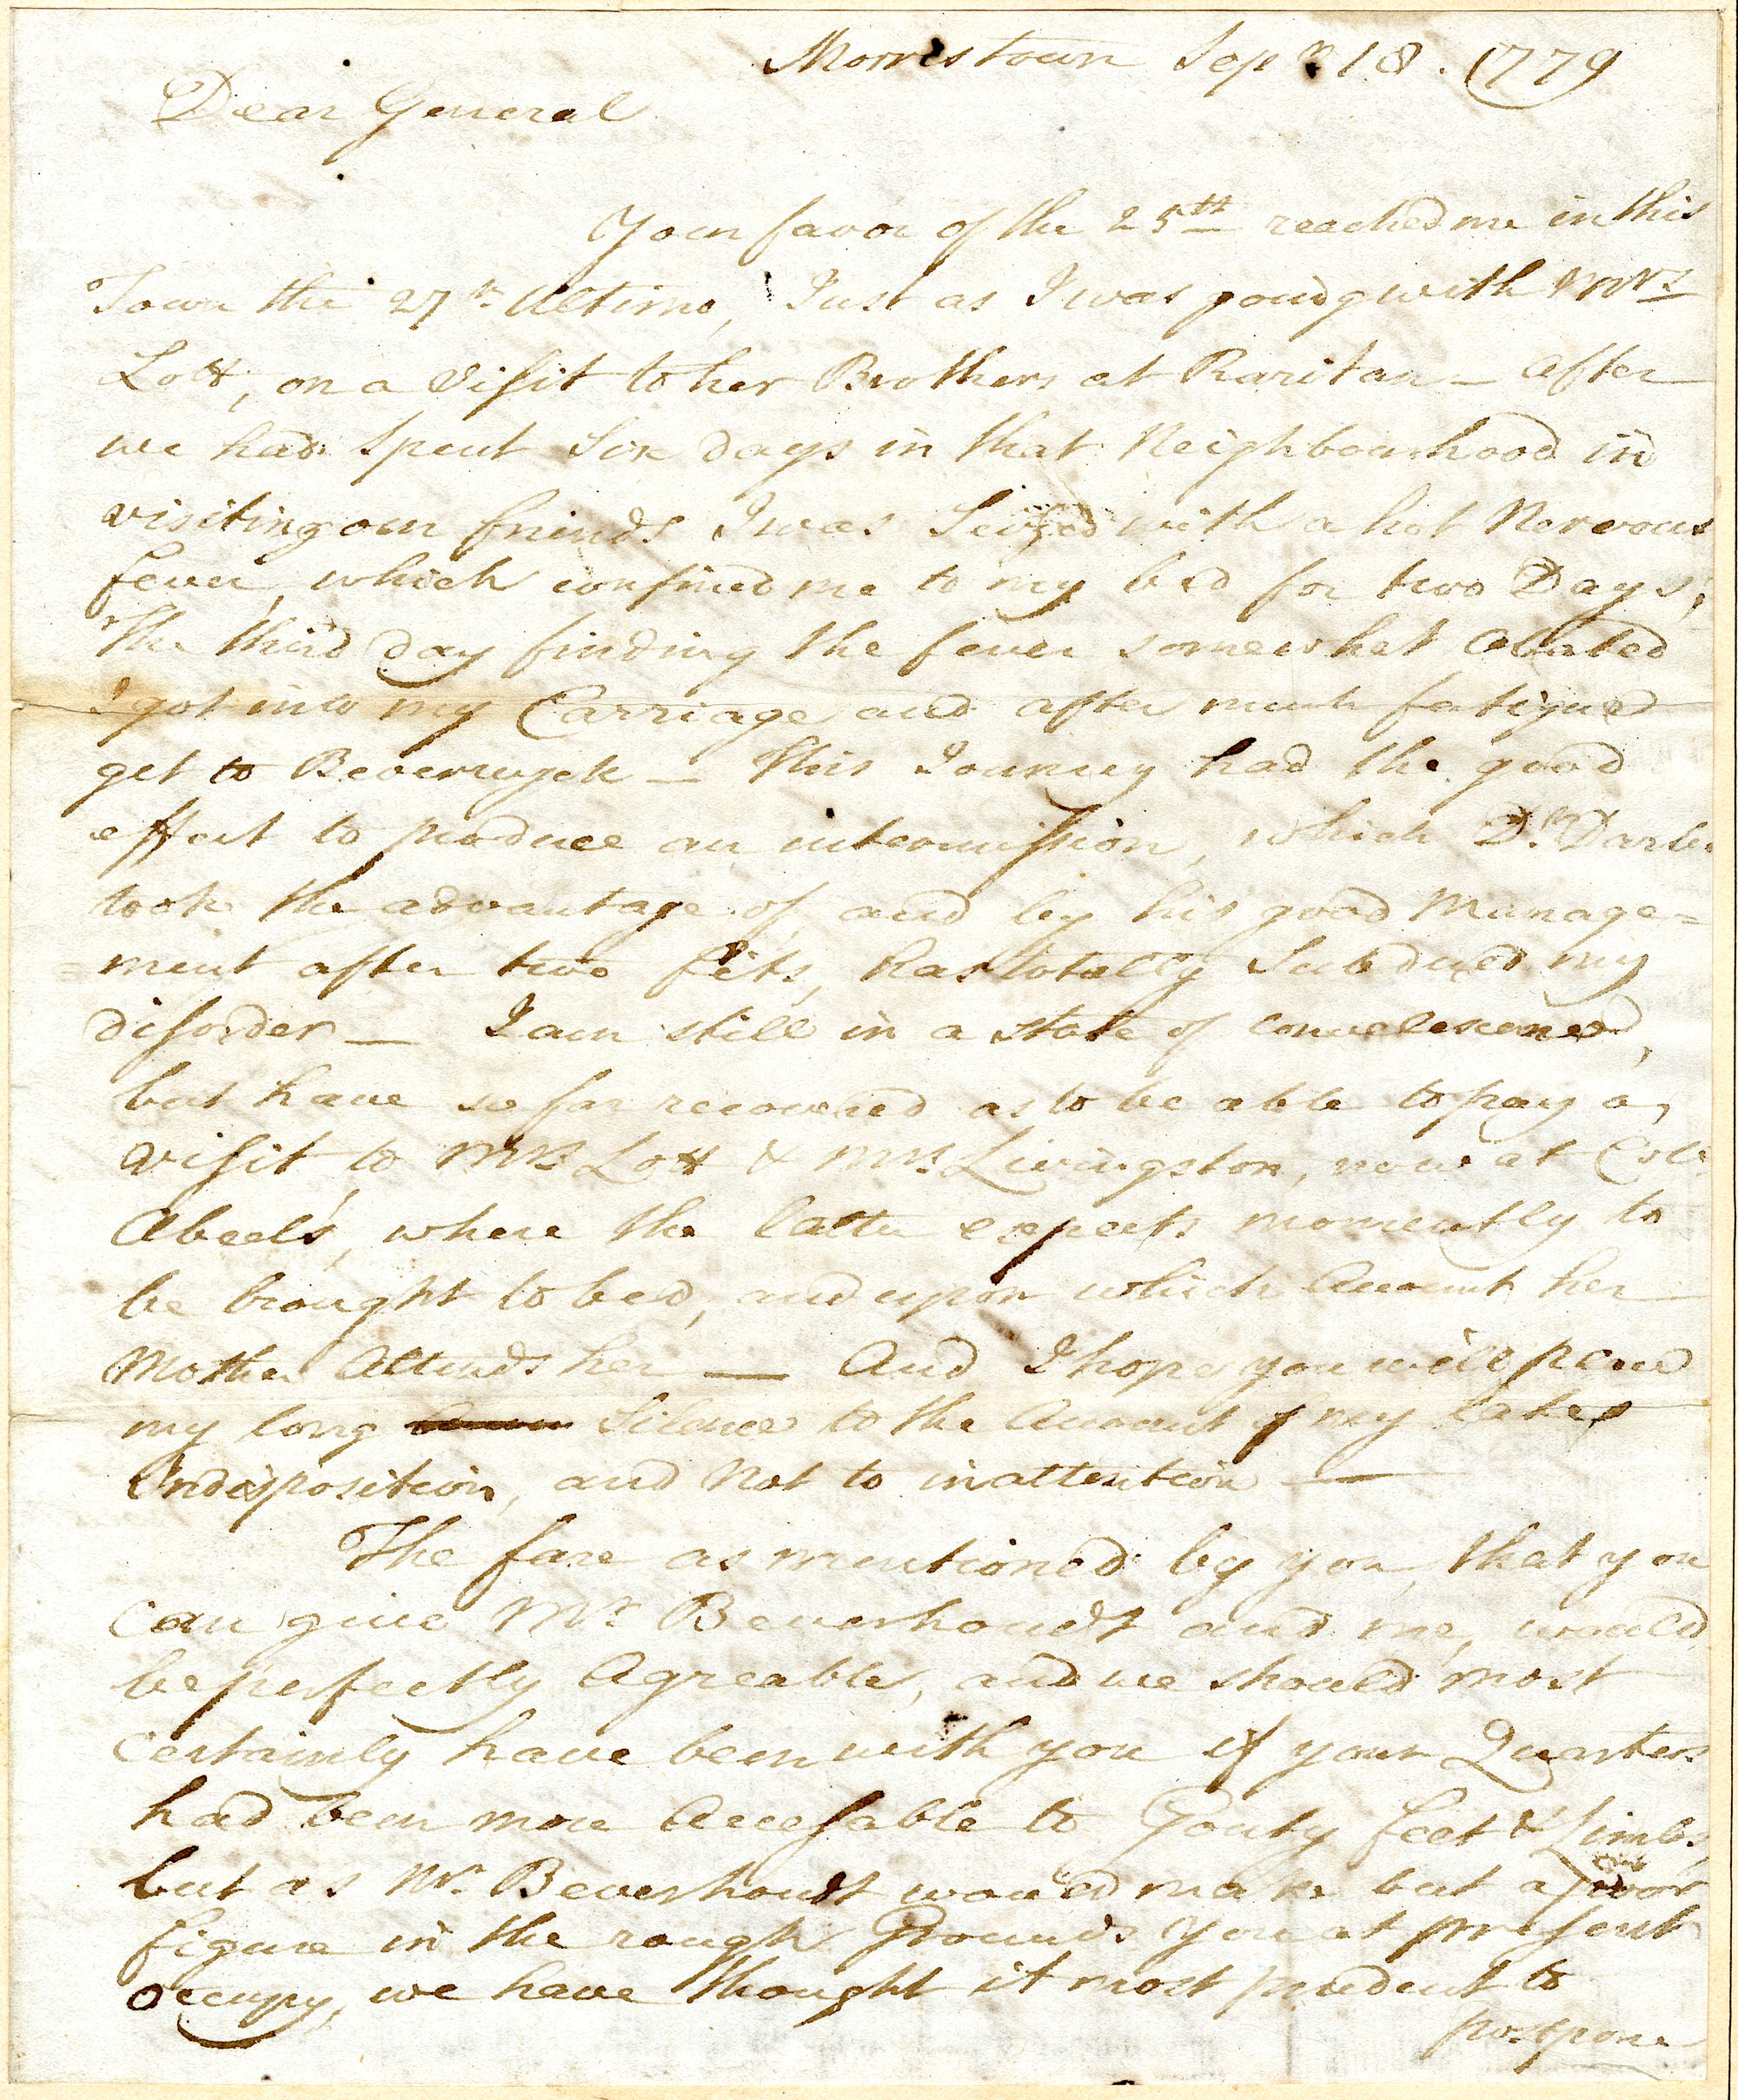 Letter from Abraham Lott to Nathanael Greene